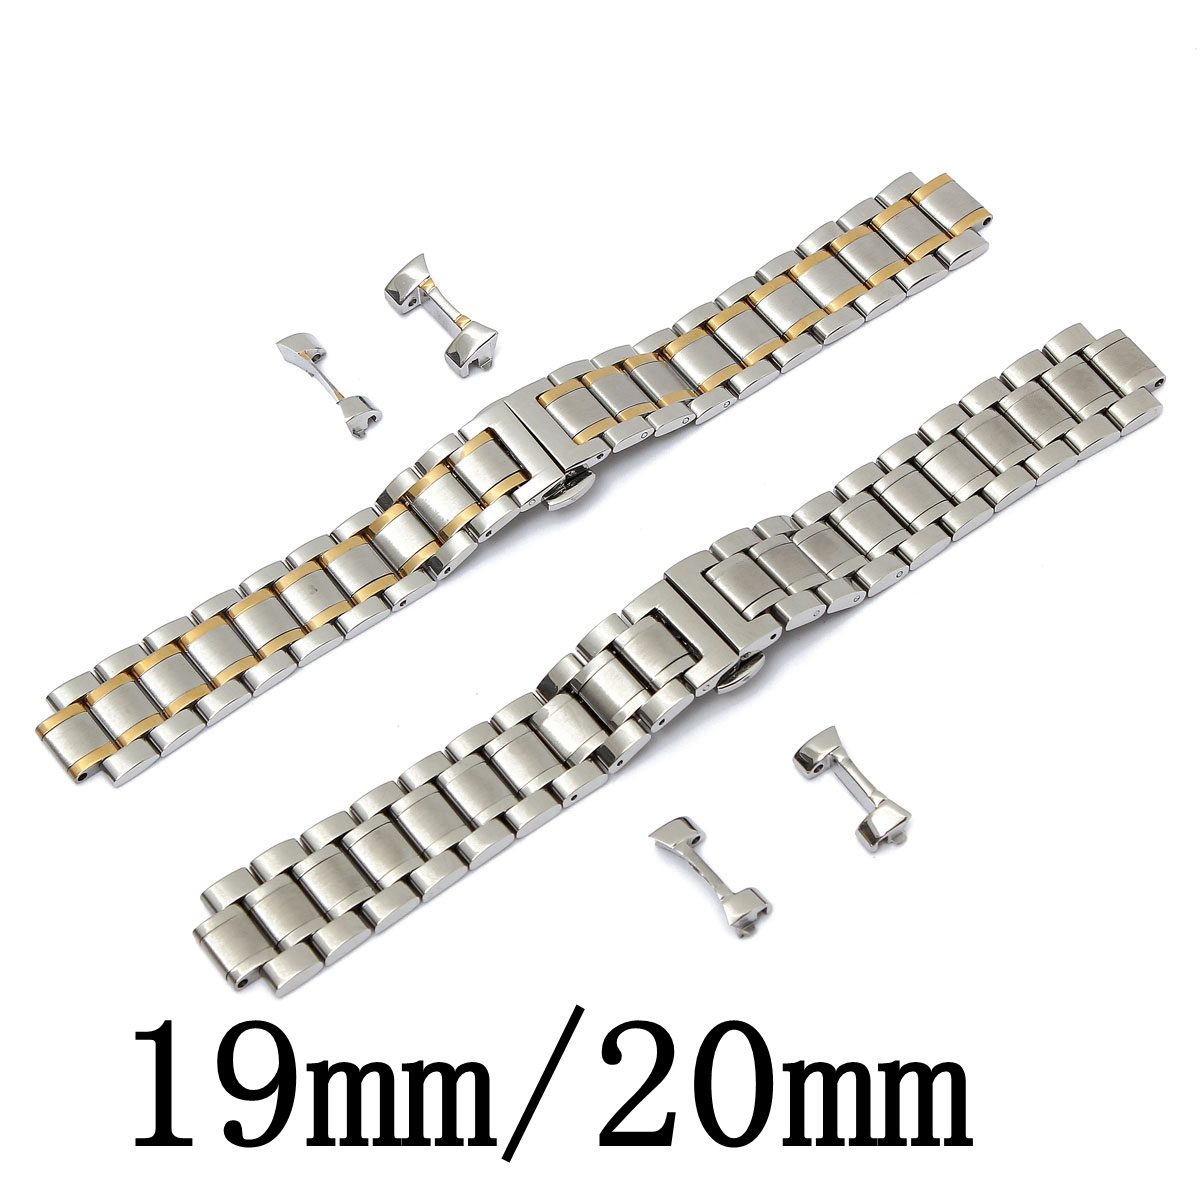 Romantic Design Sliver Watch Band 19mm/20mm Stainless Steel Watch Band Strap Curved End For LONGINES Men Series(China (Mainland))